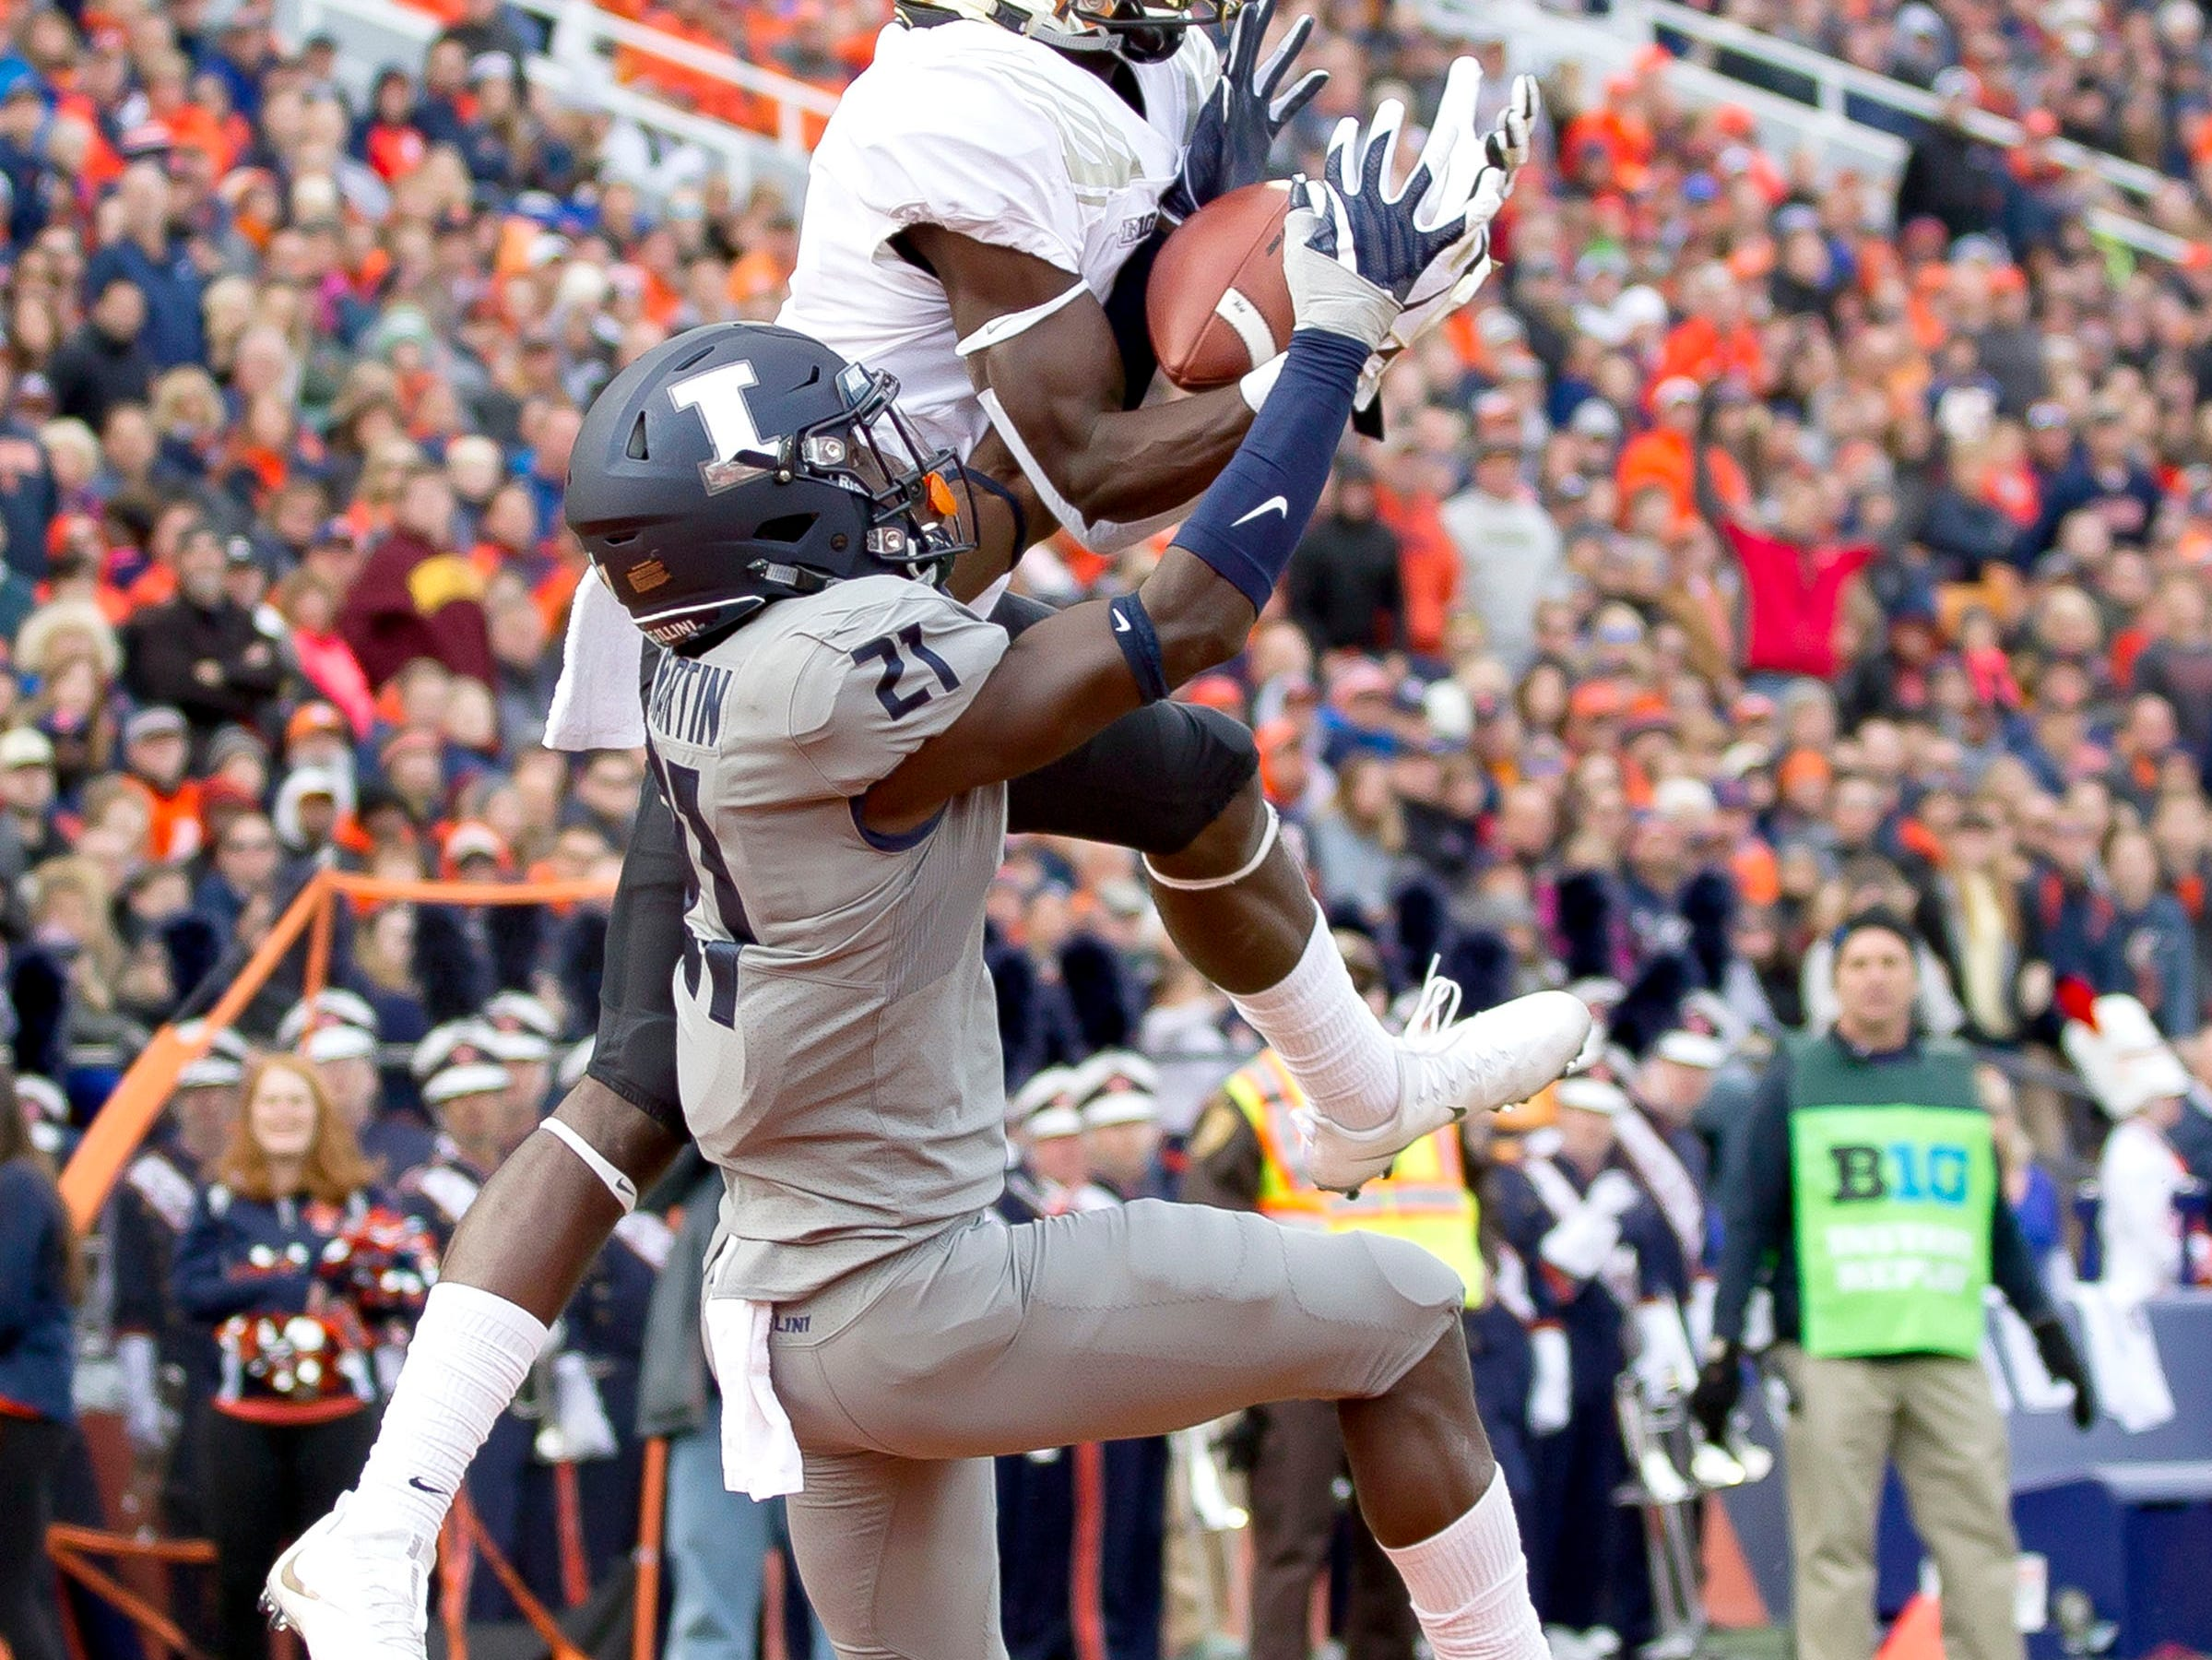 Purdue Boilermakers wide receiver Isaac Zico (7) catches a toudhdown pass while defended by Illinois Fighting Illini defensive back Jartavius Martin (21) during the second quarter at Memorial Stadium.